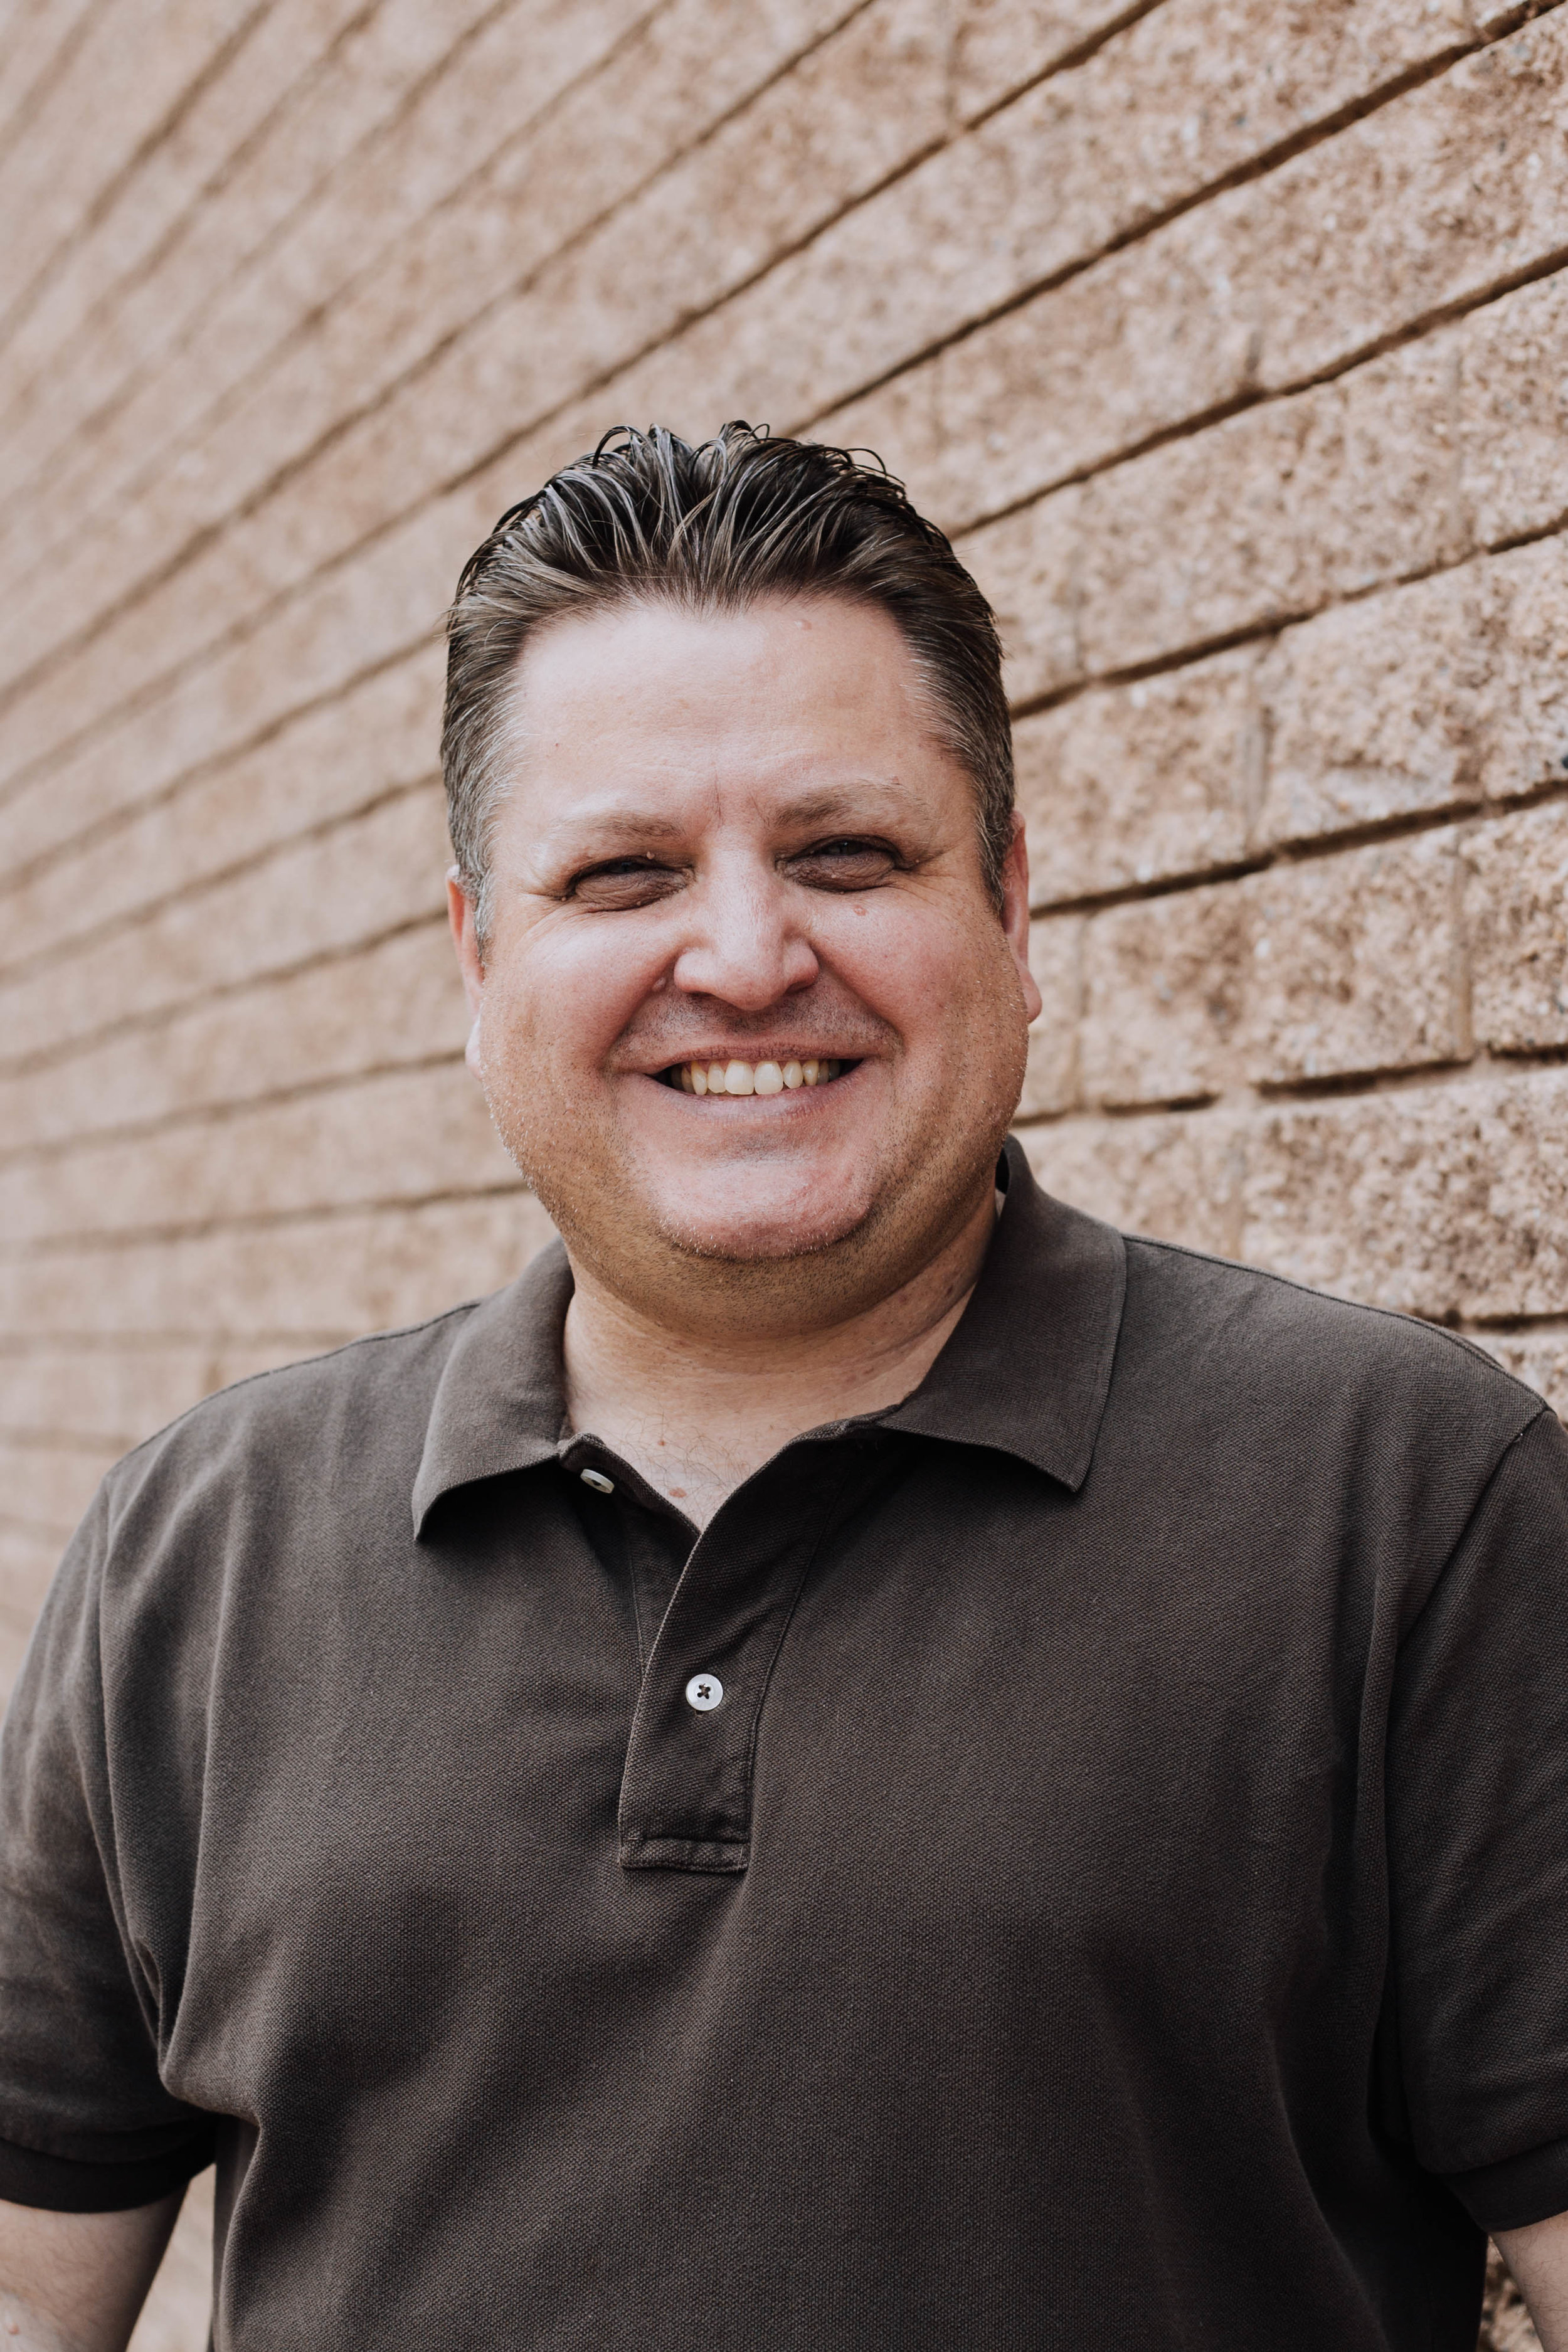 Jay Bohland - Jay BohlandJay Bohland received his accounting degree from the University of Arizona in 1993 and immediately started his own accounting practice. He passed the Arizona CPA exam in 1994 and began working with Steve Phillips and Associates in 2003.Email: jaybohland@aol.com